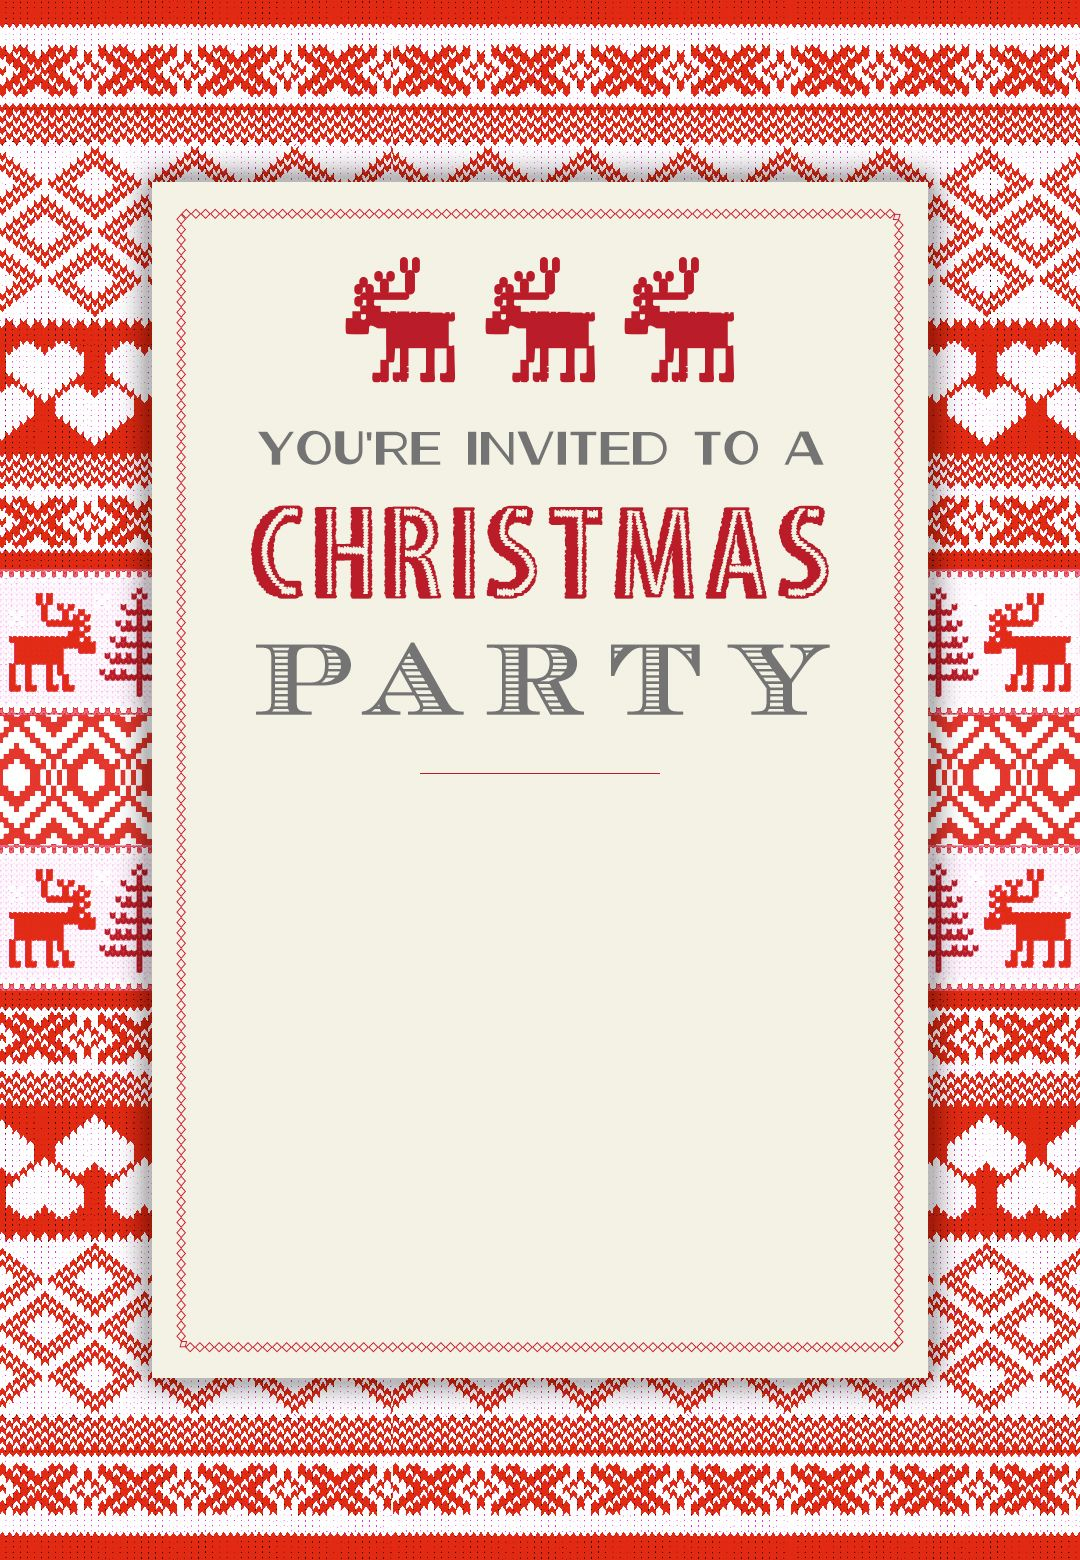 Sweaters Pattern - Free Printable Christmas Invitation Template - Free Printable Christmas Invitations